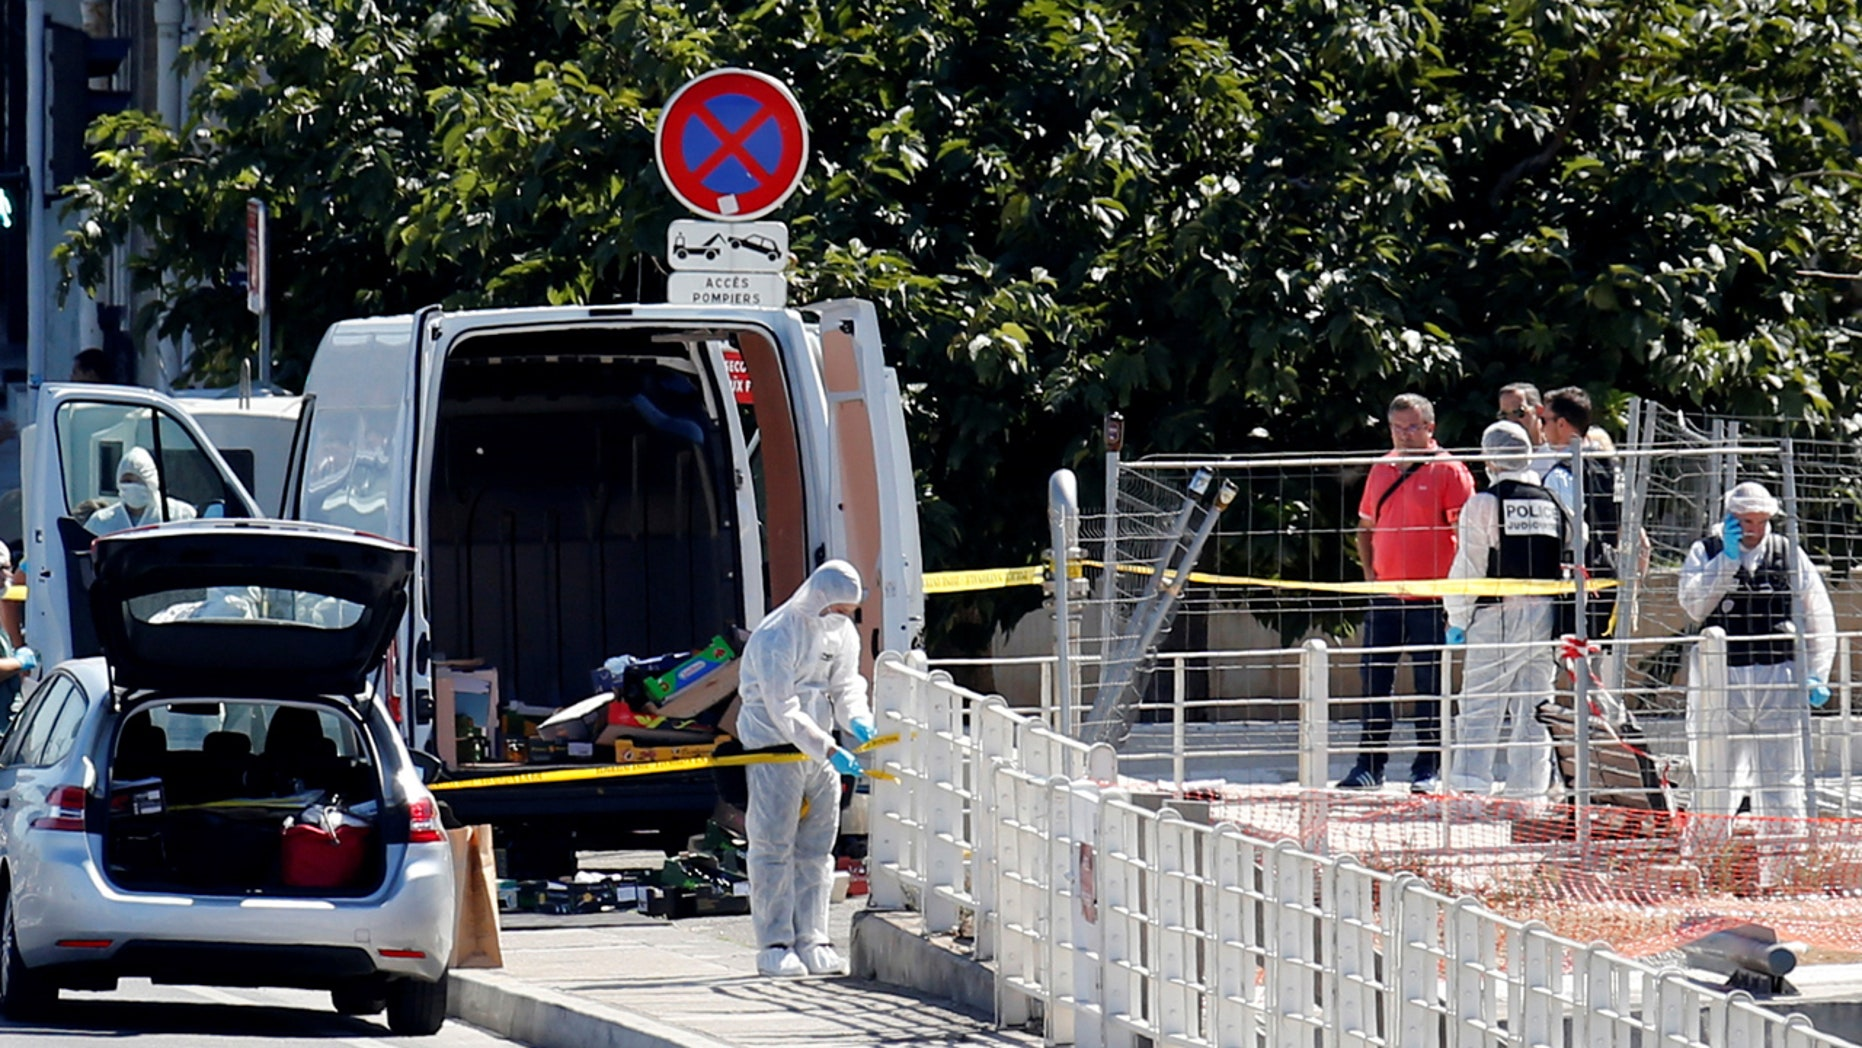 French police conduct an investigation in the French port city of Marseille after one person was killed in a vehicle ramming incident.